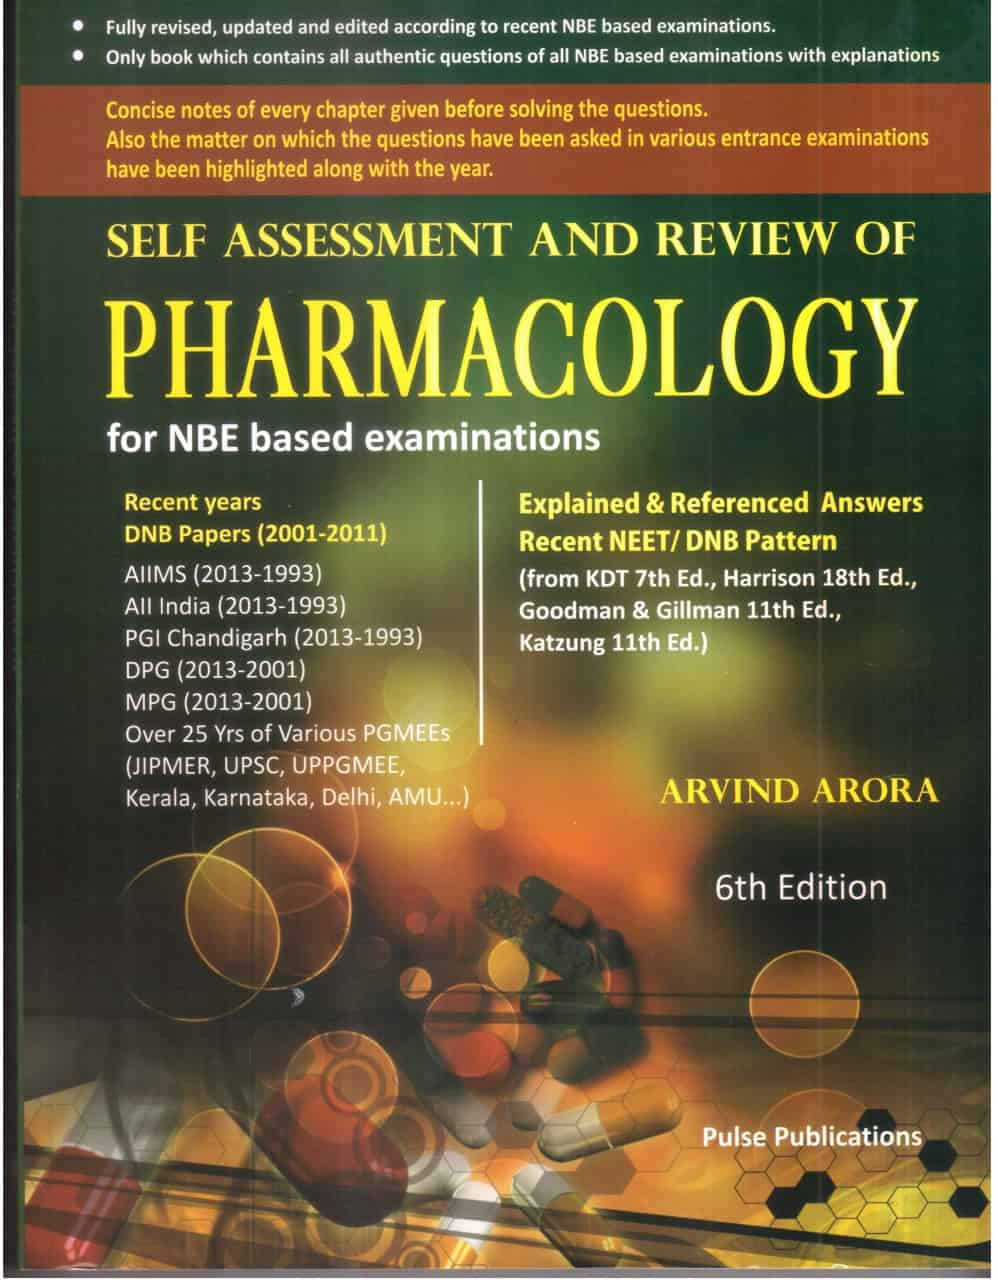 Self-Assessment and Review of Pharmacology by Arvind Arora